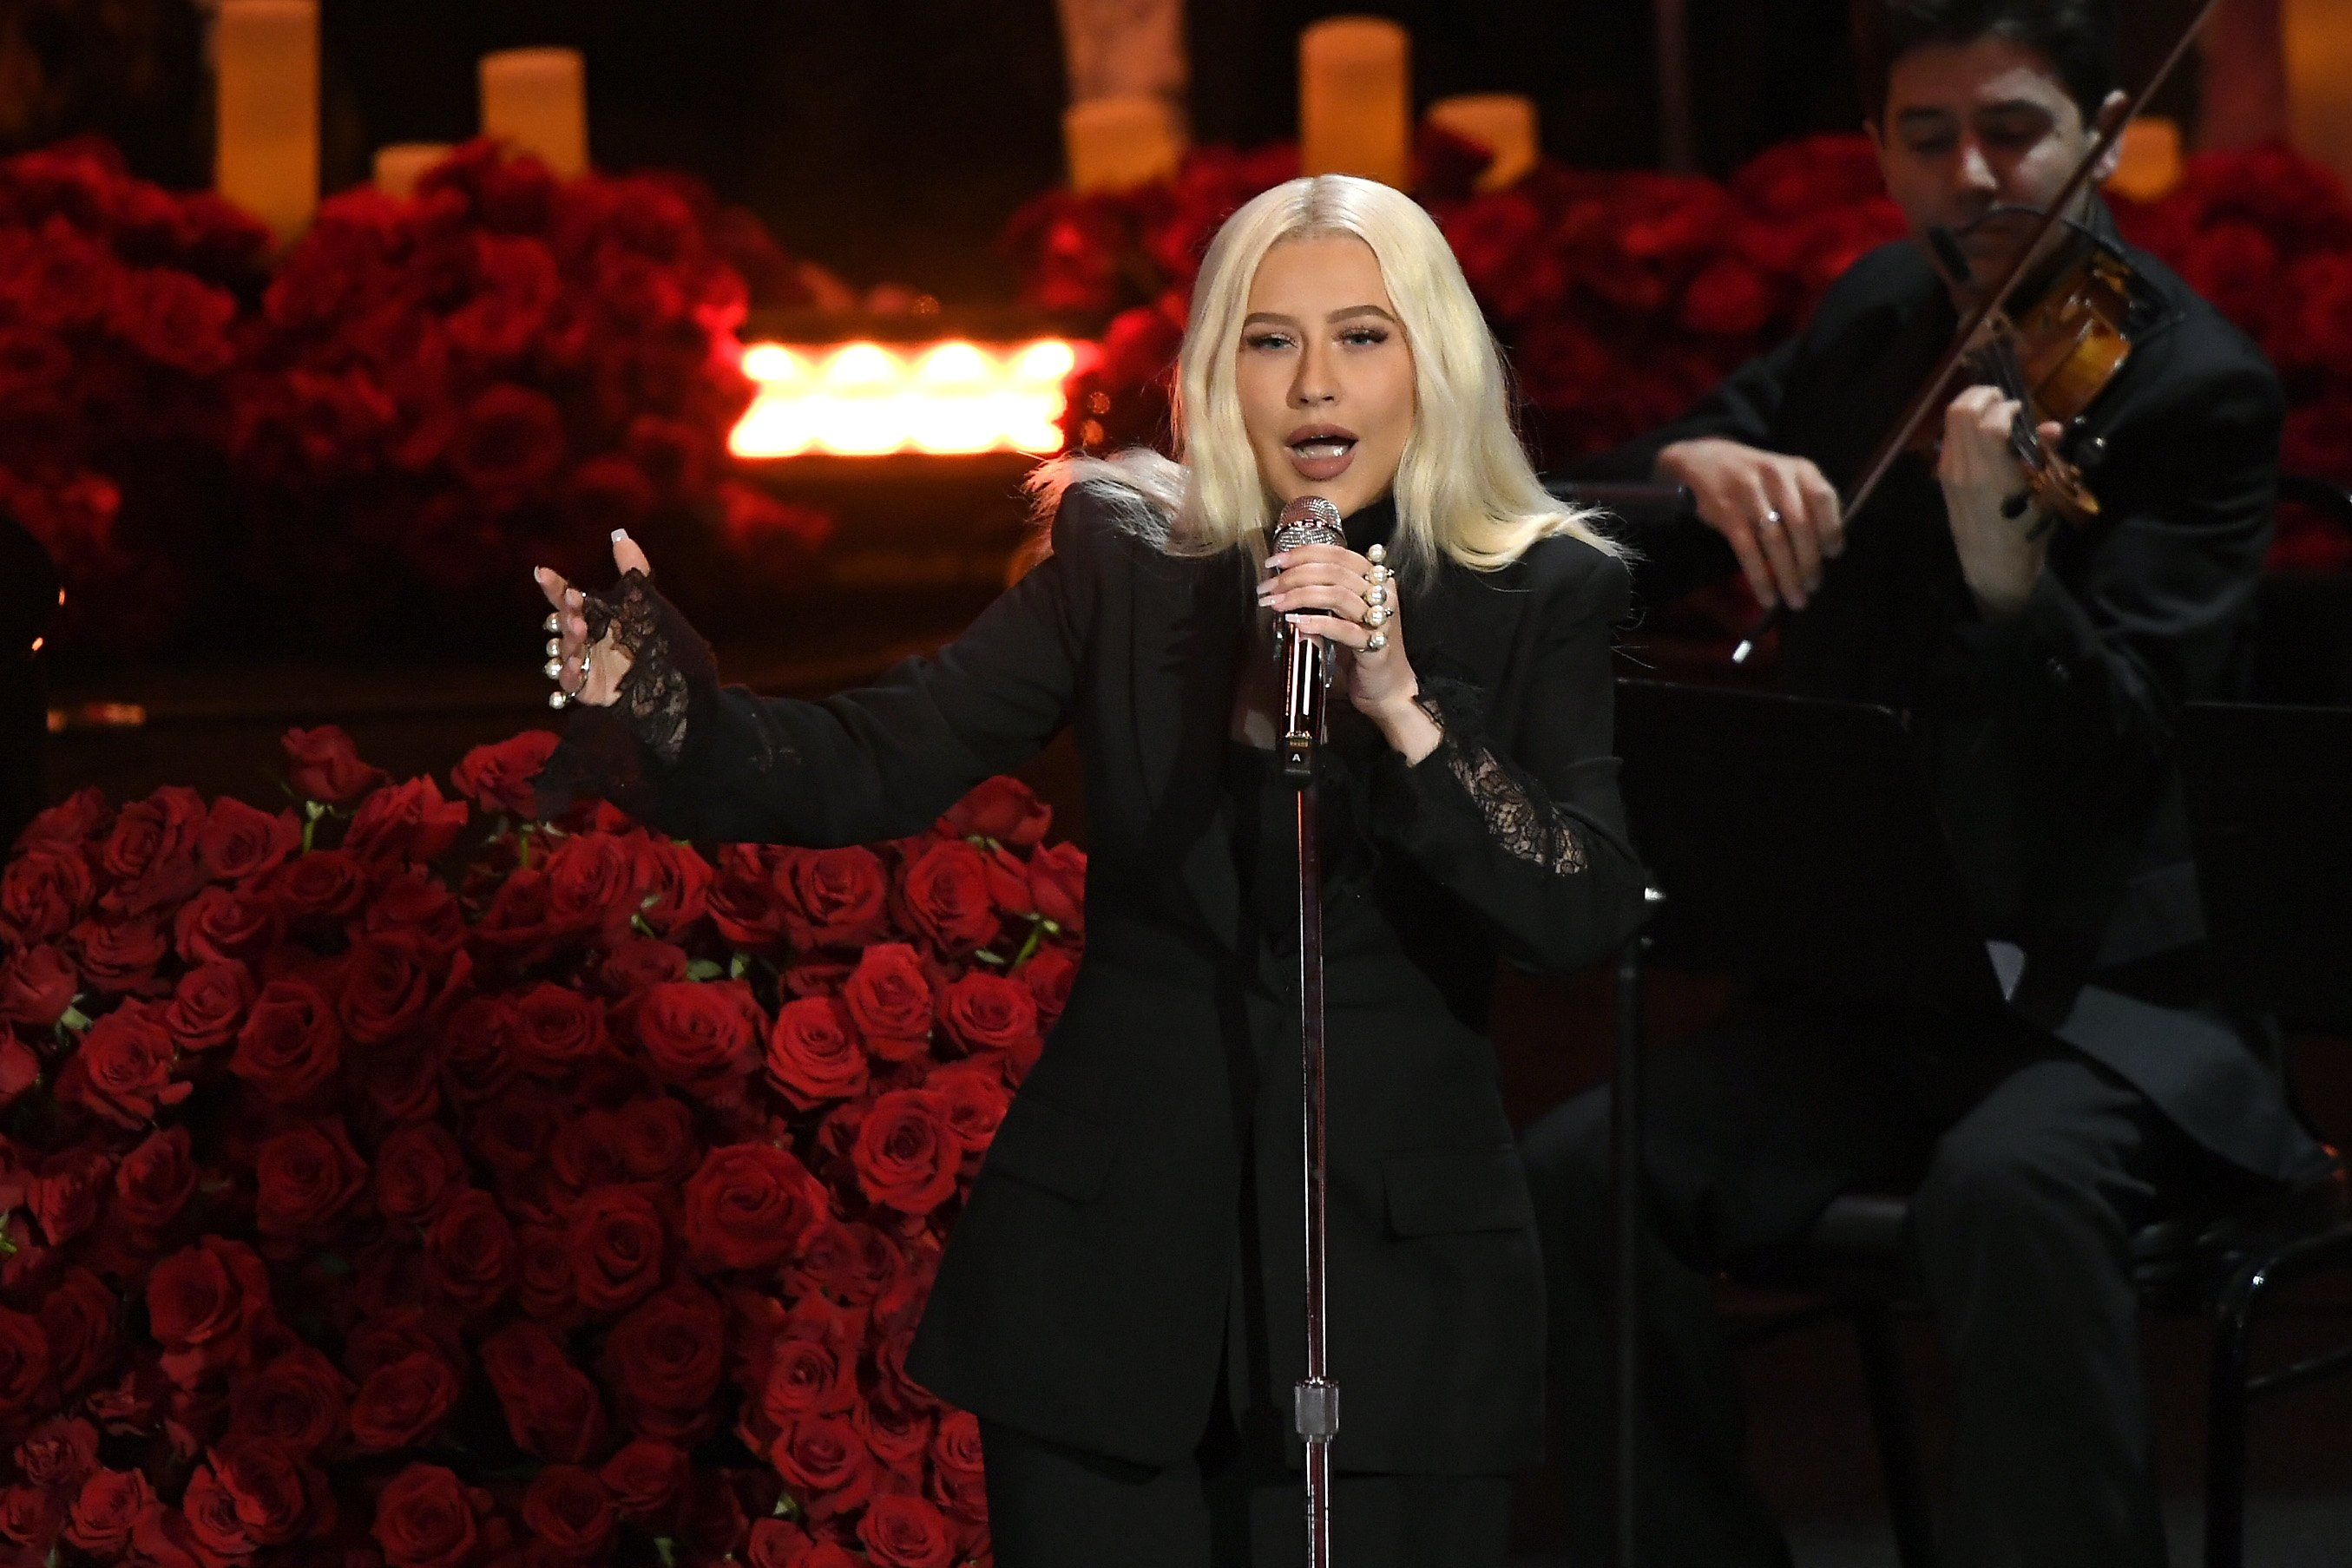 Christina Aguilera performs during The Celebration of Life for Kobe & Gianna Bryant at Staples Center on February 24, 2020 | Photo: Getty Images